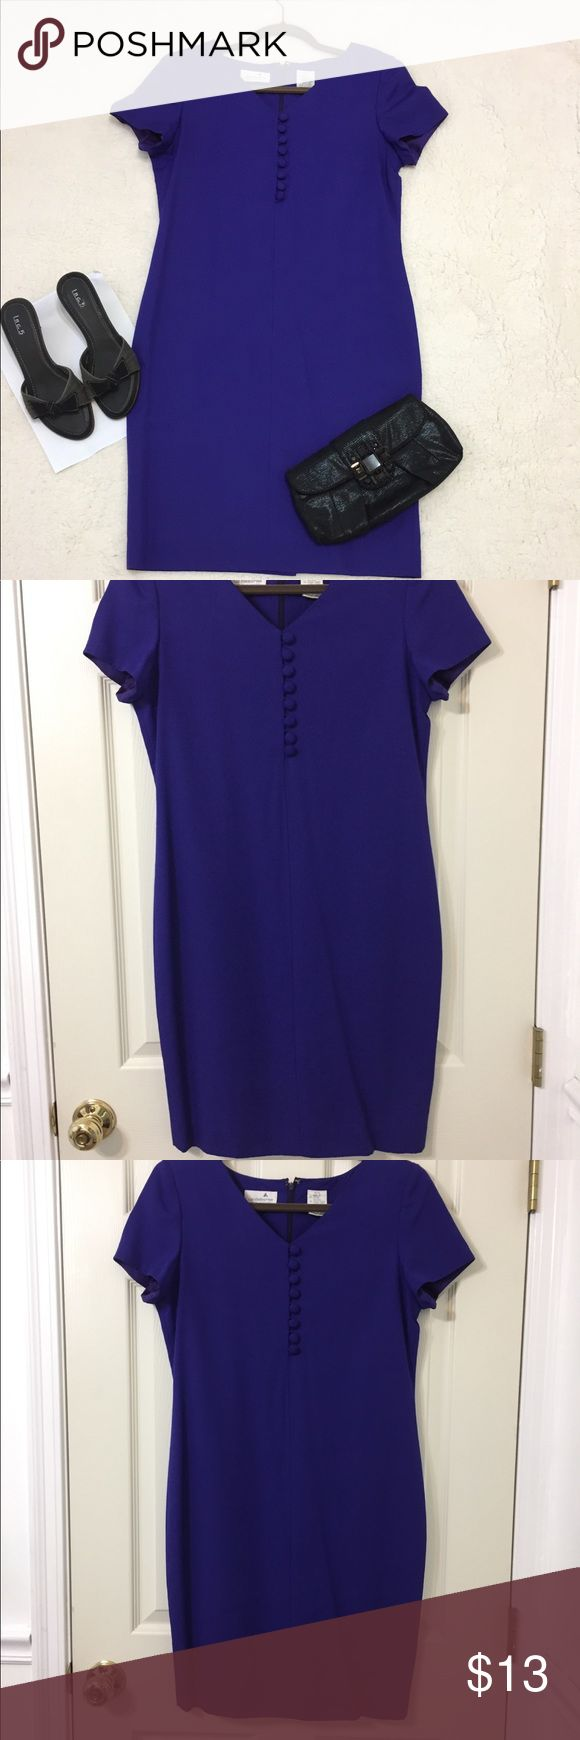 Liz Claiborne Royal blue Petite dress Stunning Dress in Rich Royal blue dress with short sleeve , buttons and has small slit in the back. Very good Condition except discoloration inside the arms(As shown in Pictures). Liz Claiborne Dresses